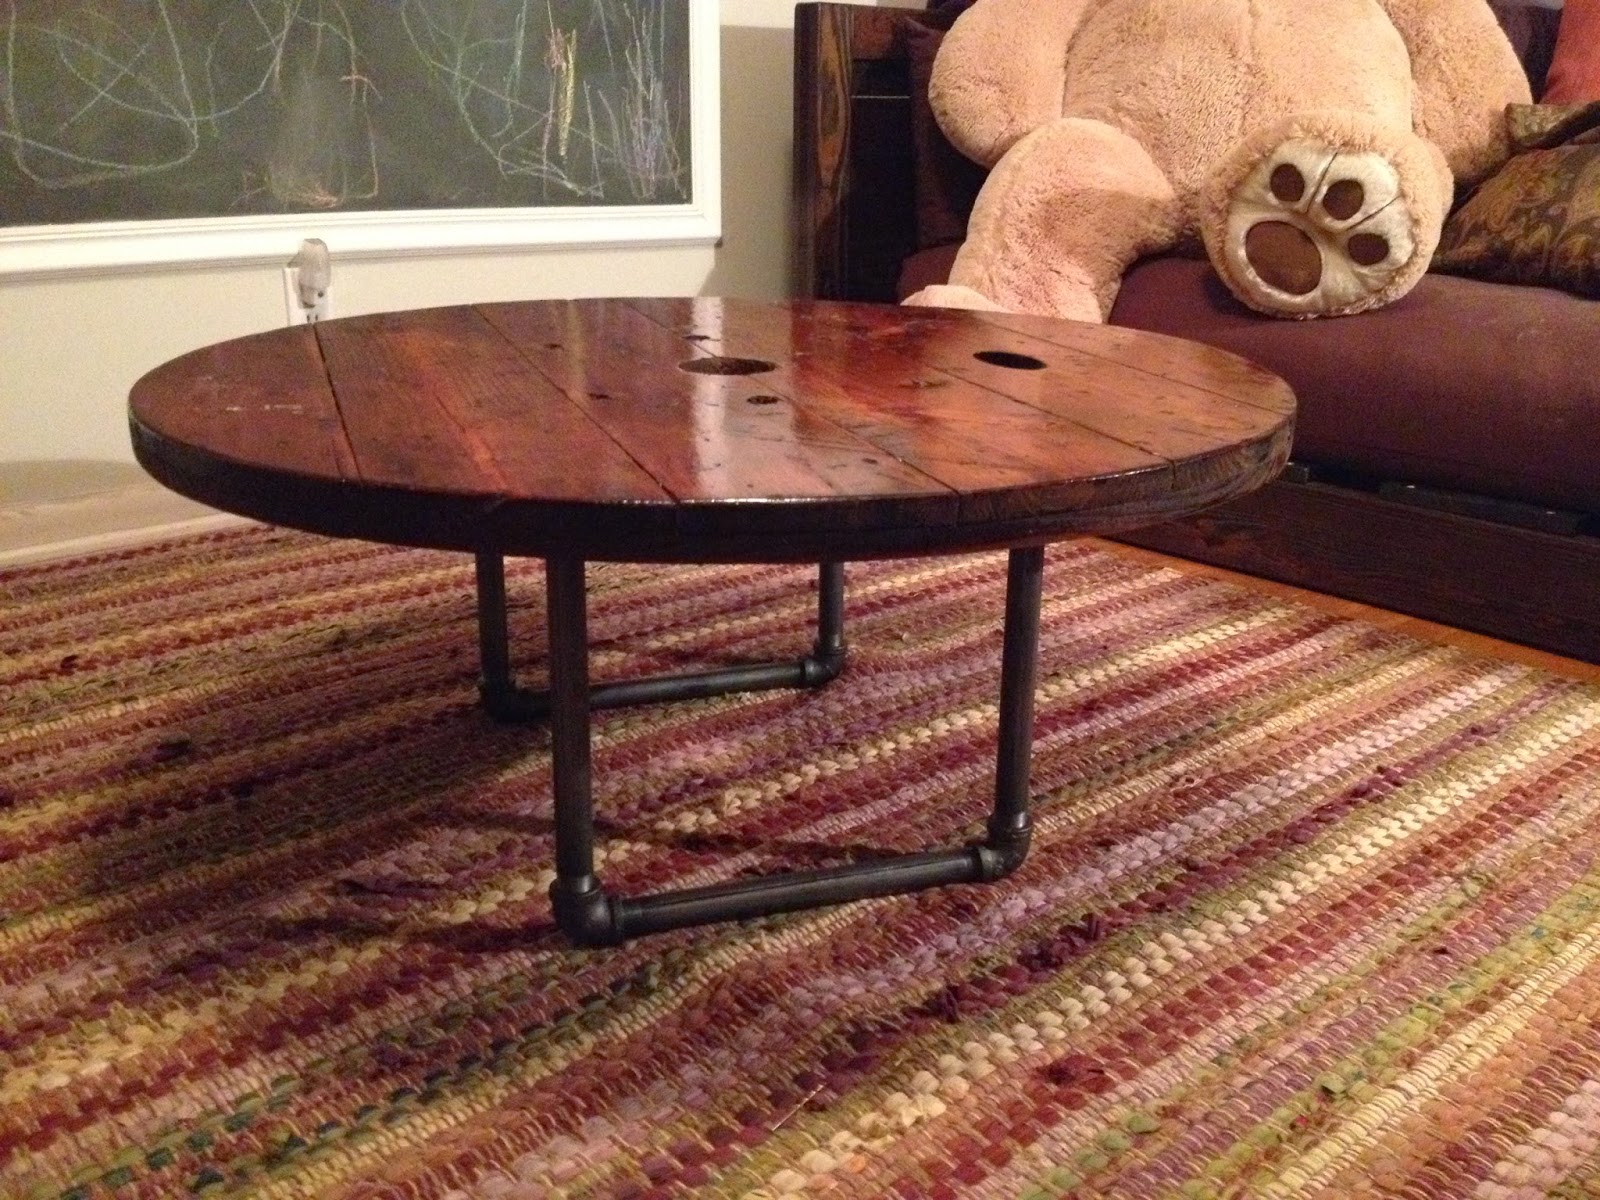 The Dizzy Designer Cable Spool Turned Coffee Table